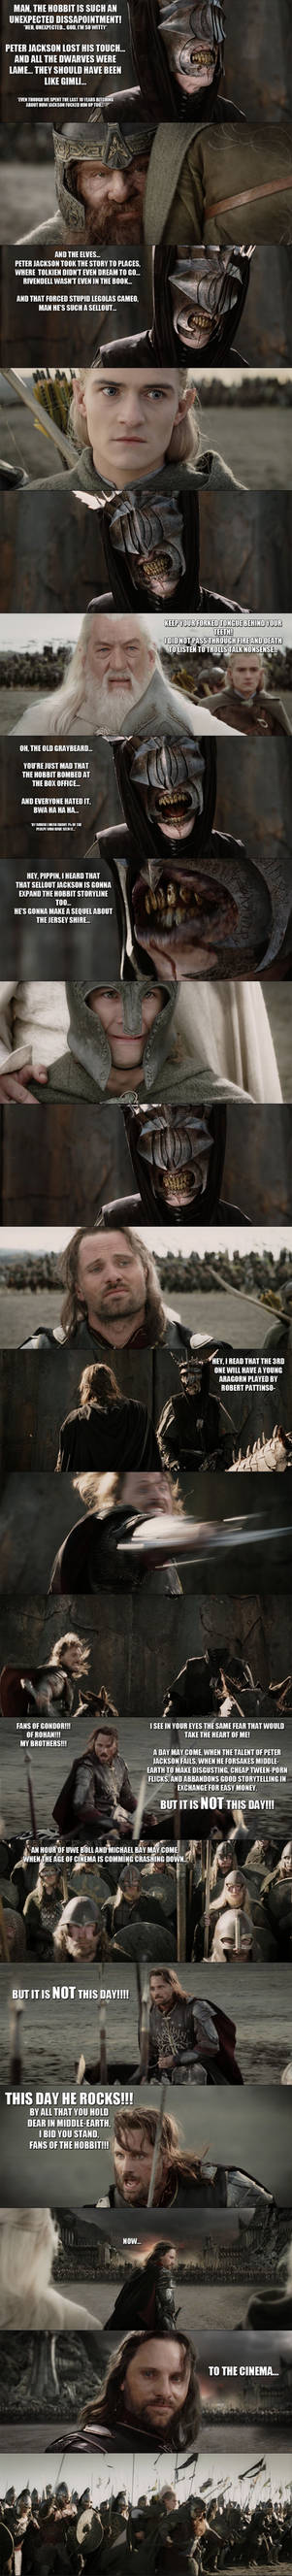 The Hobbit - Aragorn vs the Troll of Sauron...